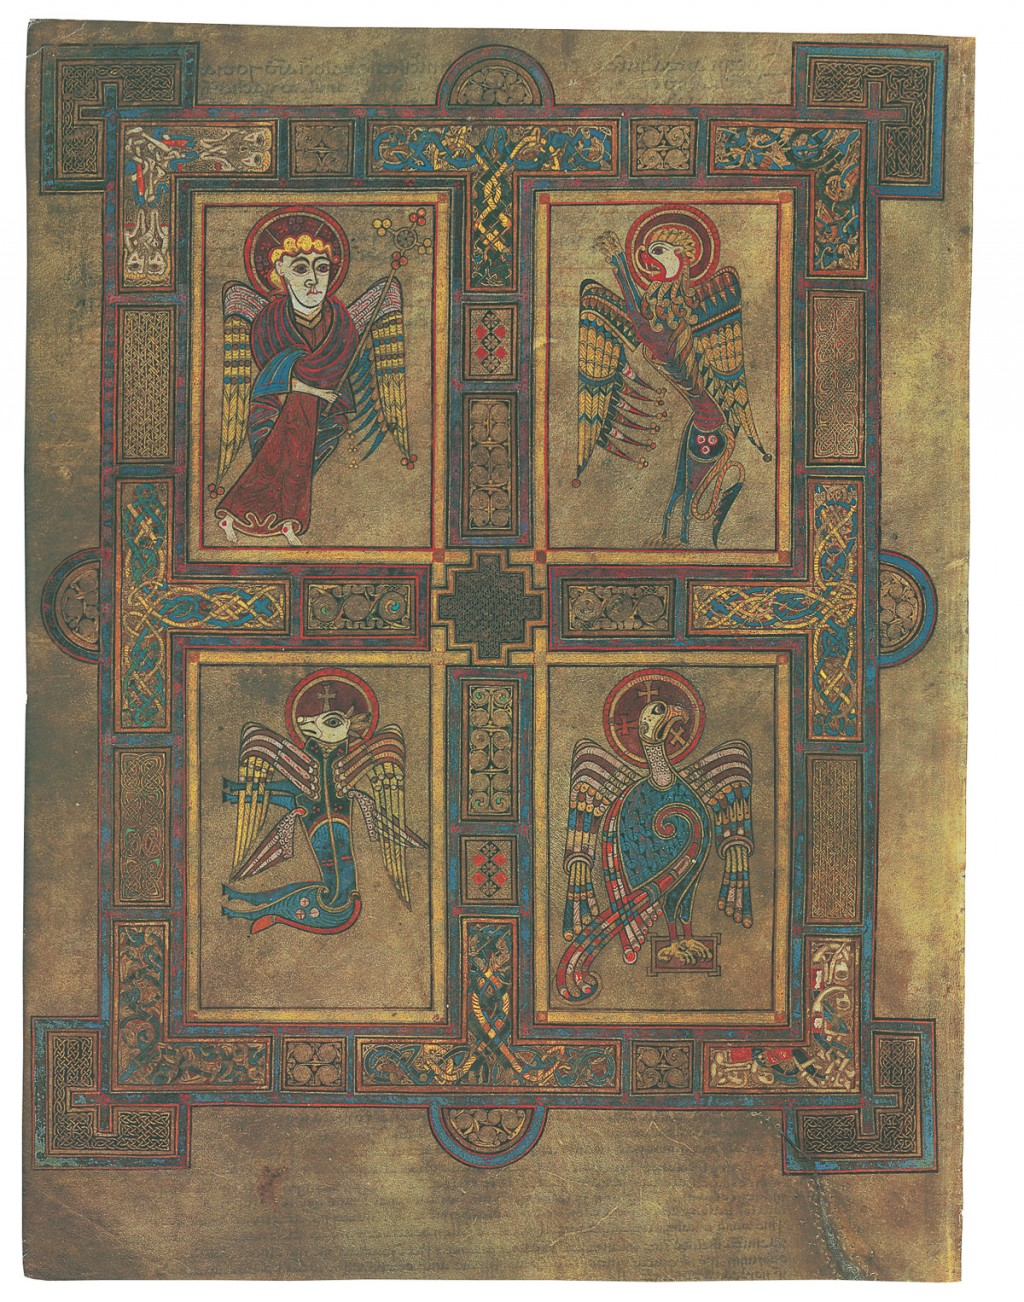 Illuminated page from The Book of Kells